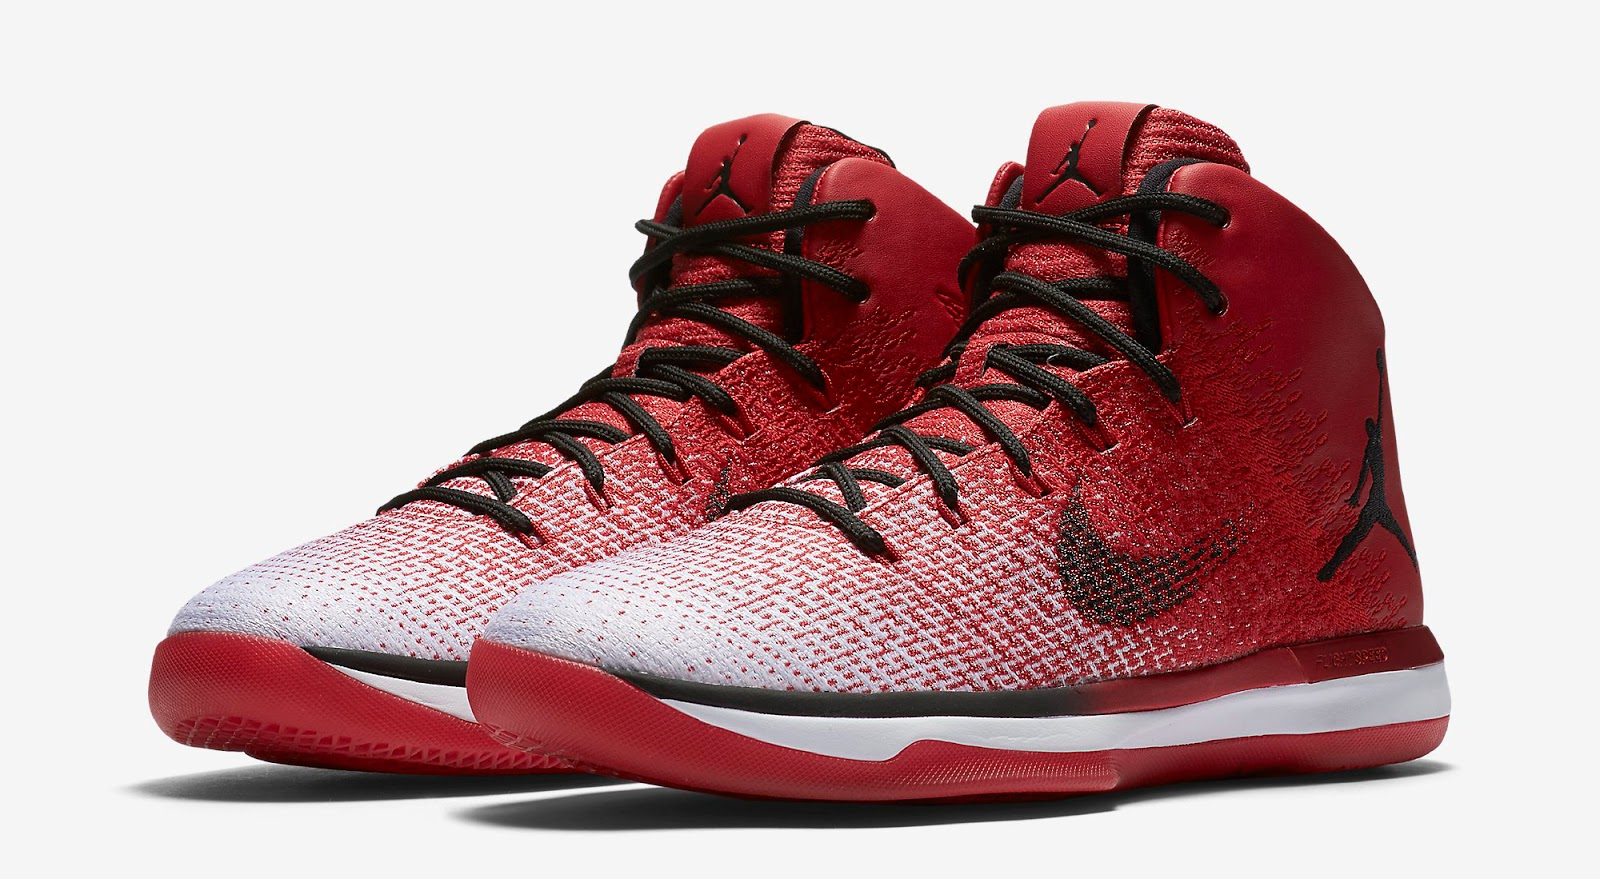 190a7a40741 wholesale jordan 31 air jordan xxx1 banned black university red white 28143  a3c73; real known as the chicago edition this air jordan xxxi comes in a  bulls ...